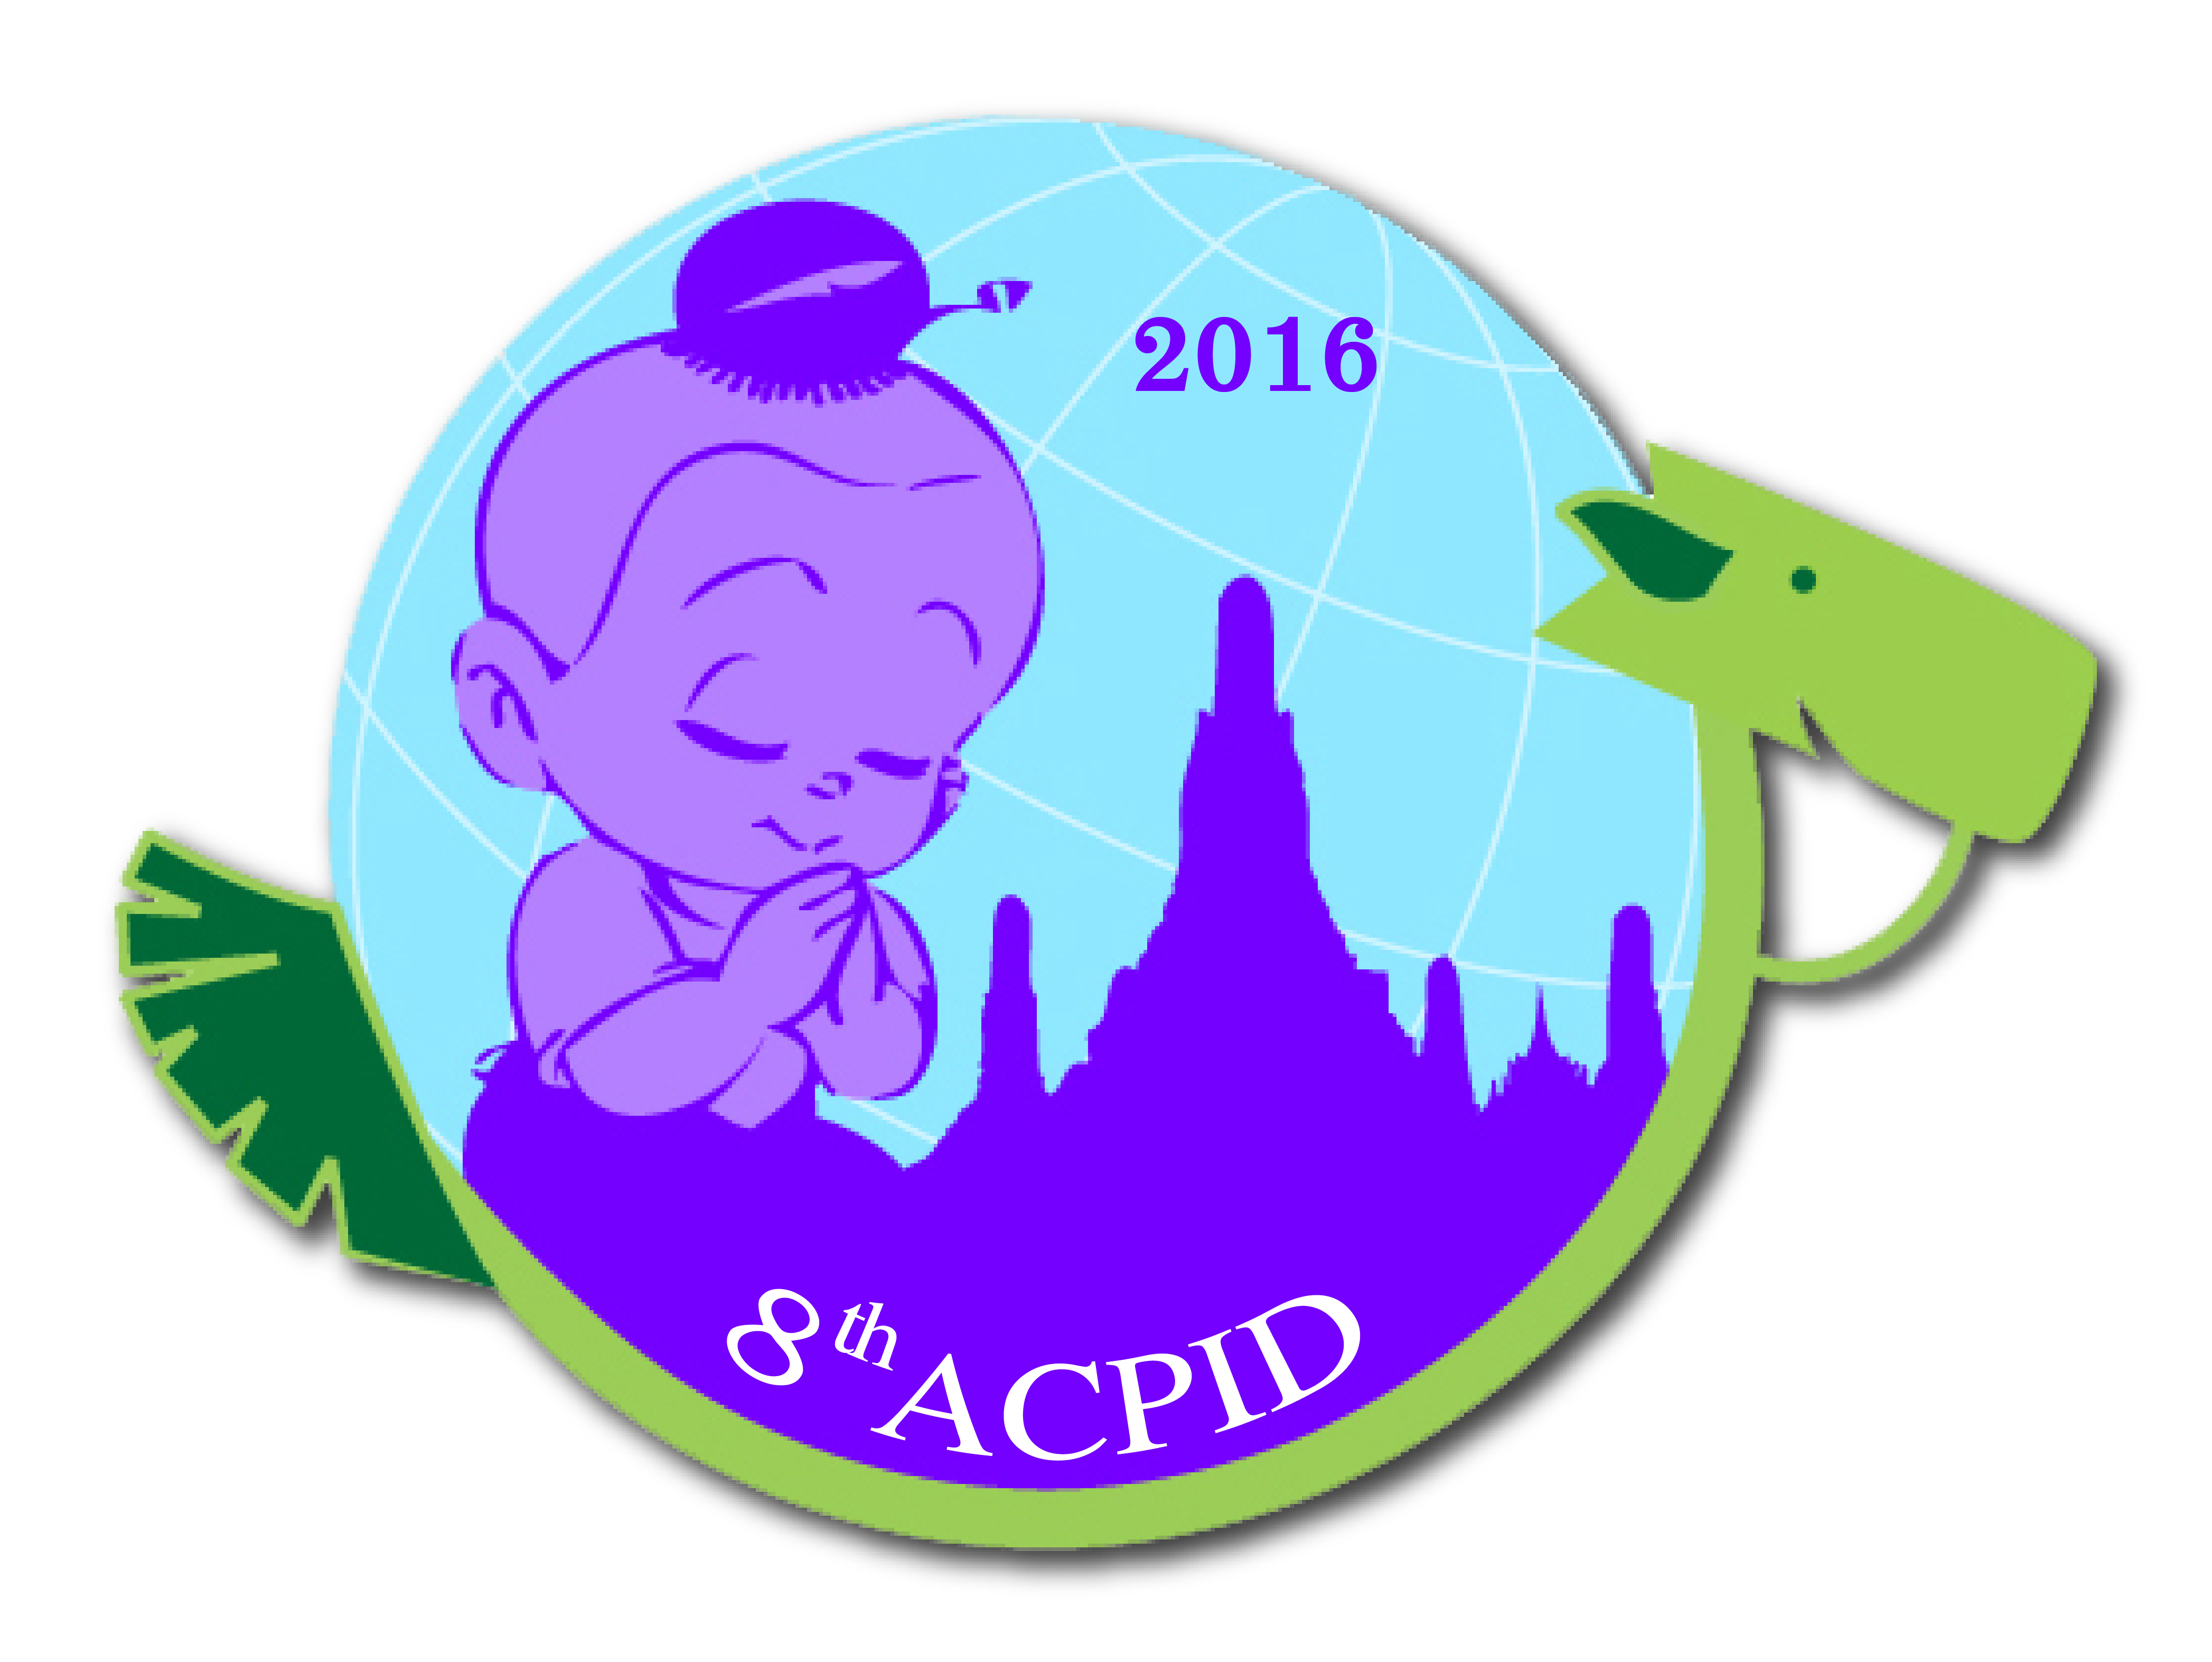 8th Asian Congress of Pediatric Infectious Disease (ACPID) - www.acpid2016.com.png